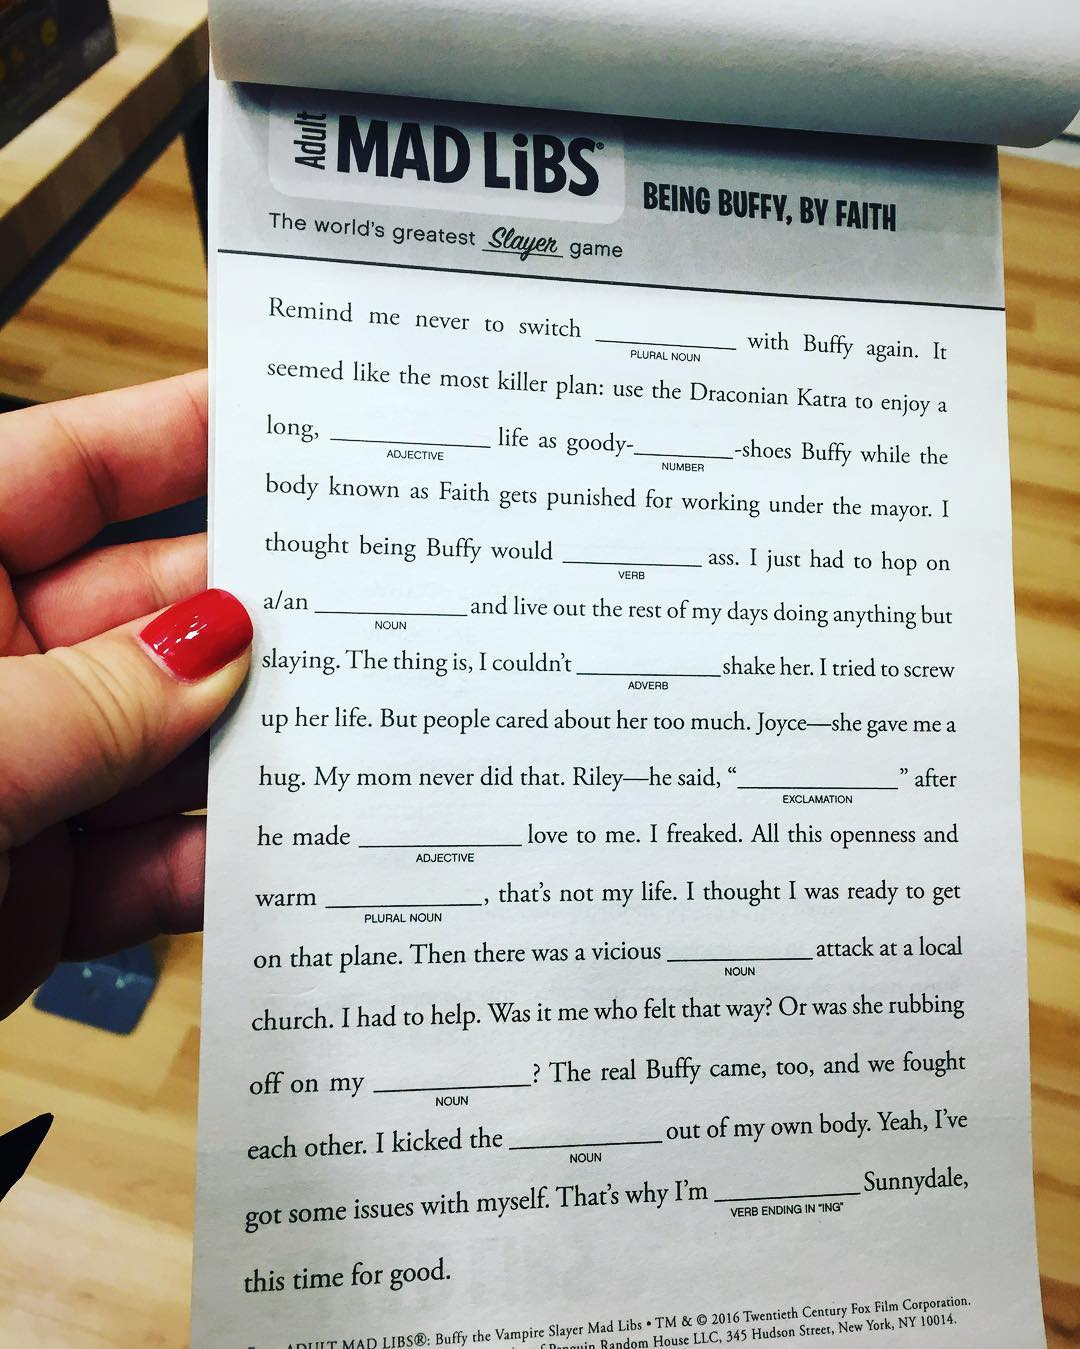 Inspiring Woman Puts Equality For Every Word In This Mad Libs